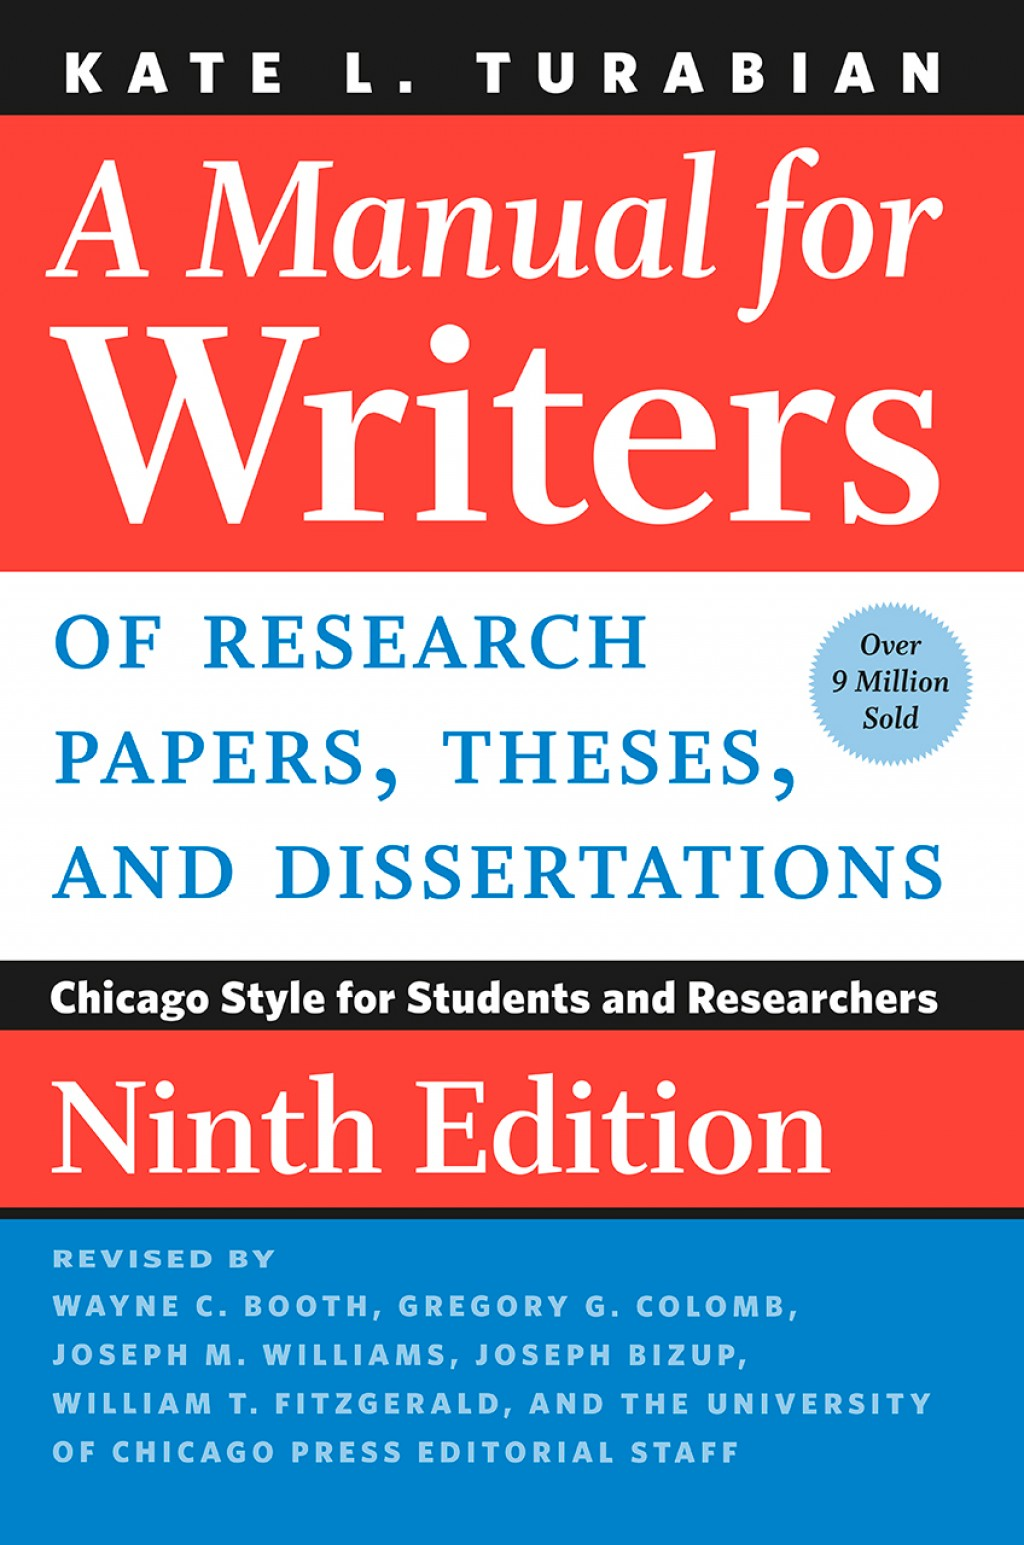 002 Research Paper Manual For Writers Of Papers Theses And Dissertations 8th Striking A Ed Pdf Large